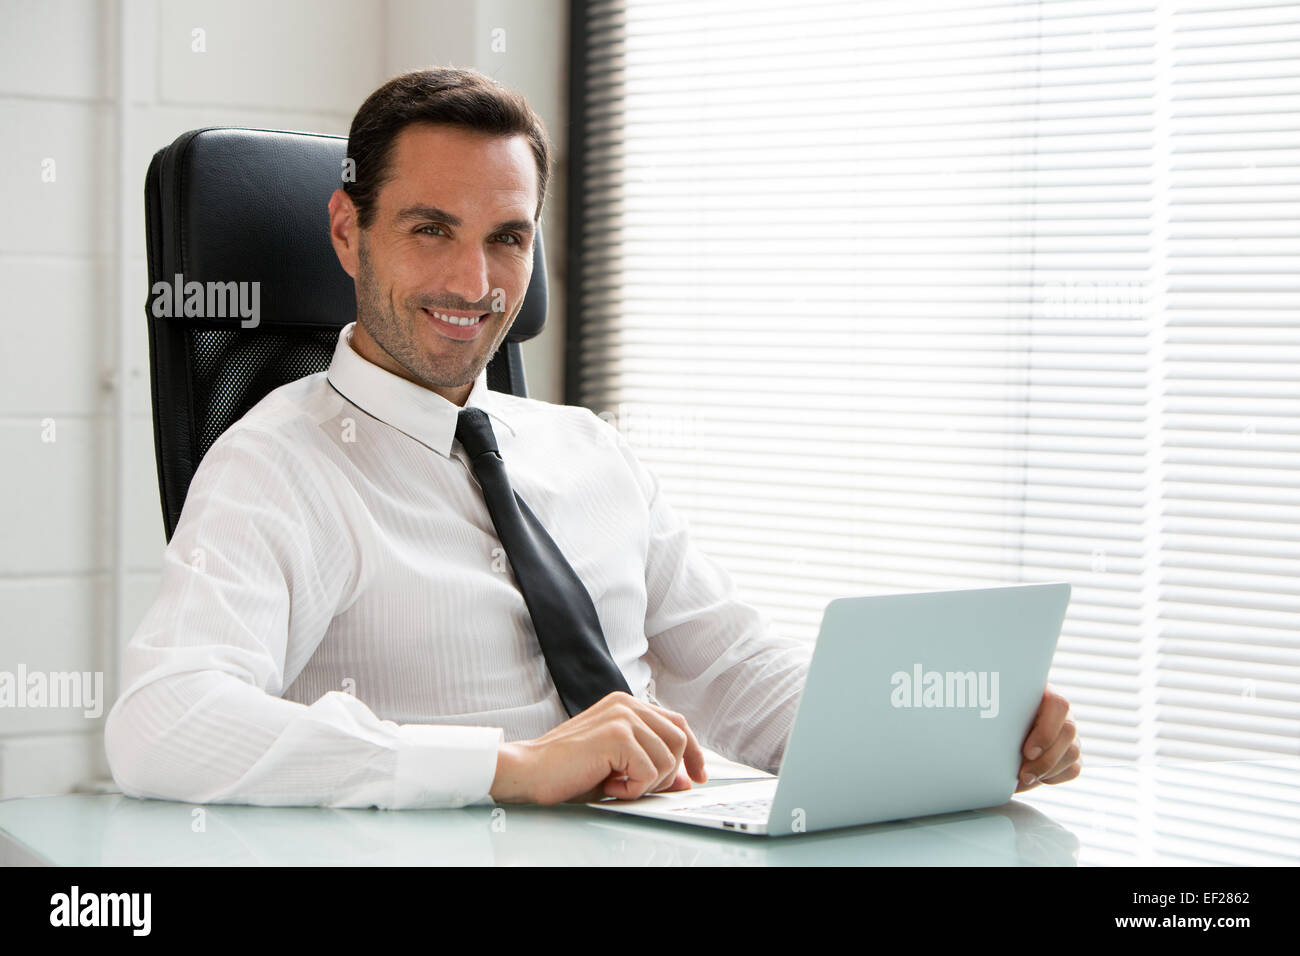 Half length portrait of a male businessman, smiling at camera and working with a laptop computer - Stock Image